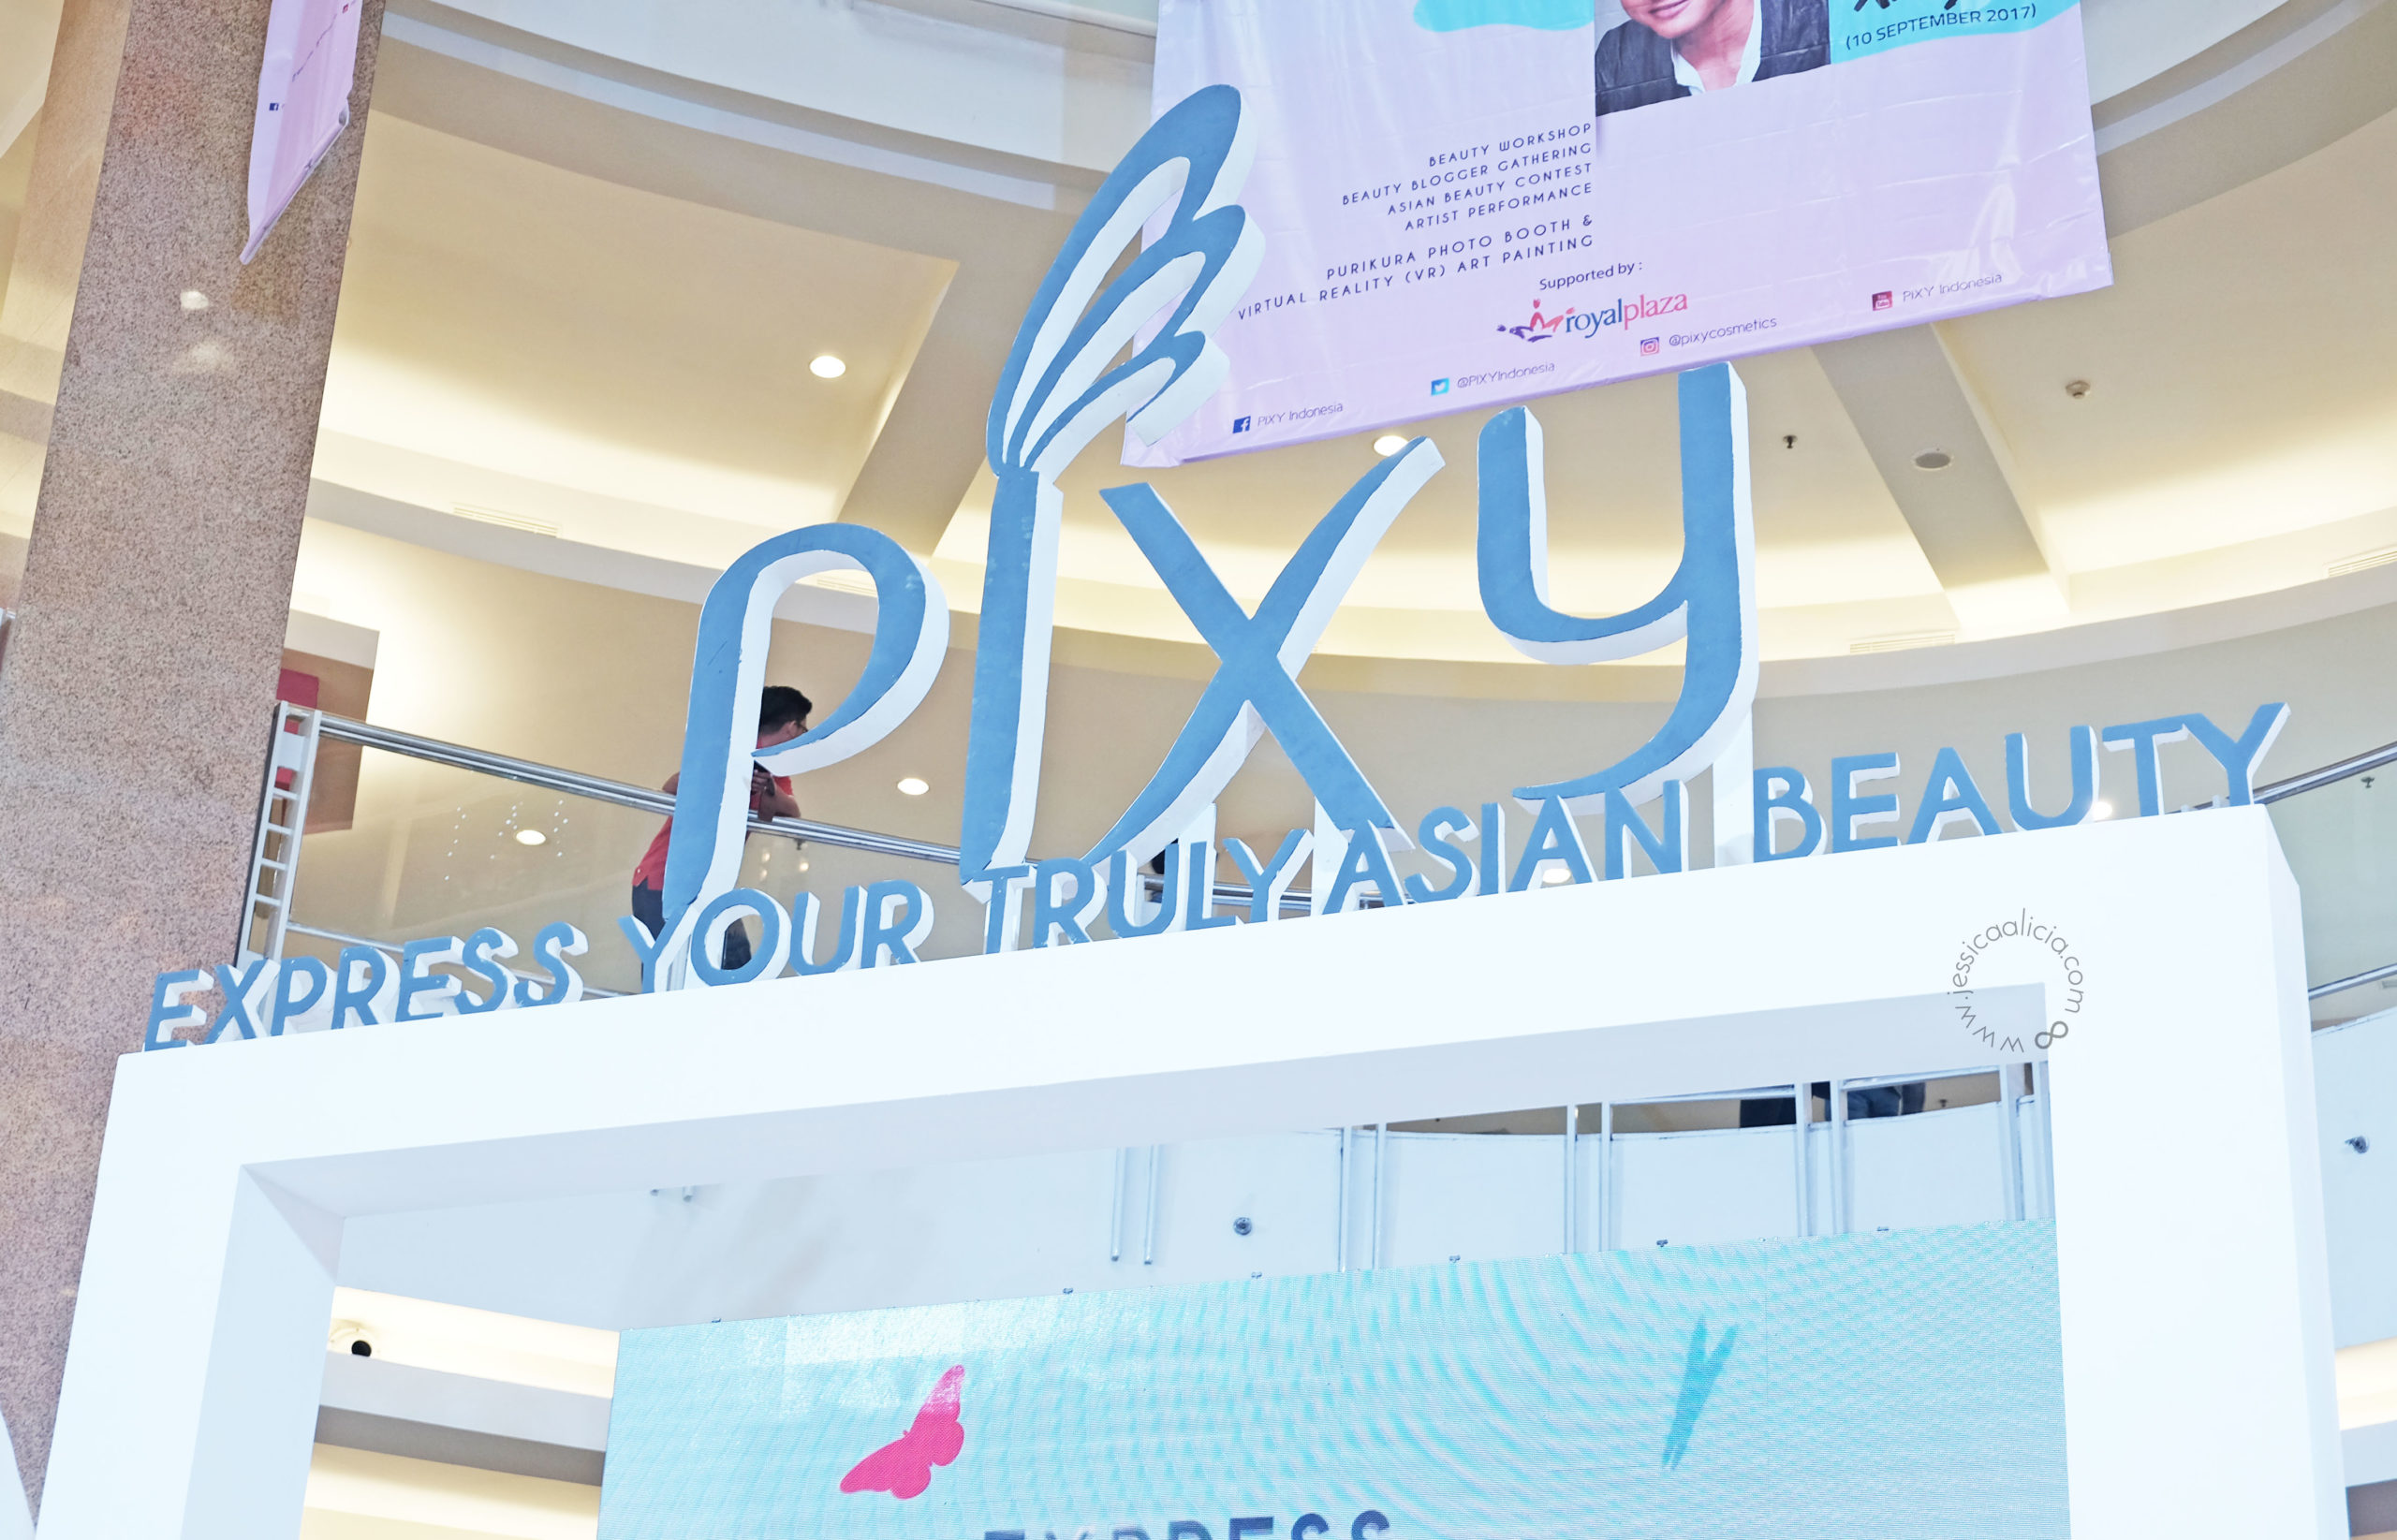 Event Report : PIXY Express Your Truly Asian Beauty at Surabaya